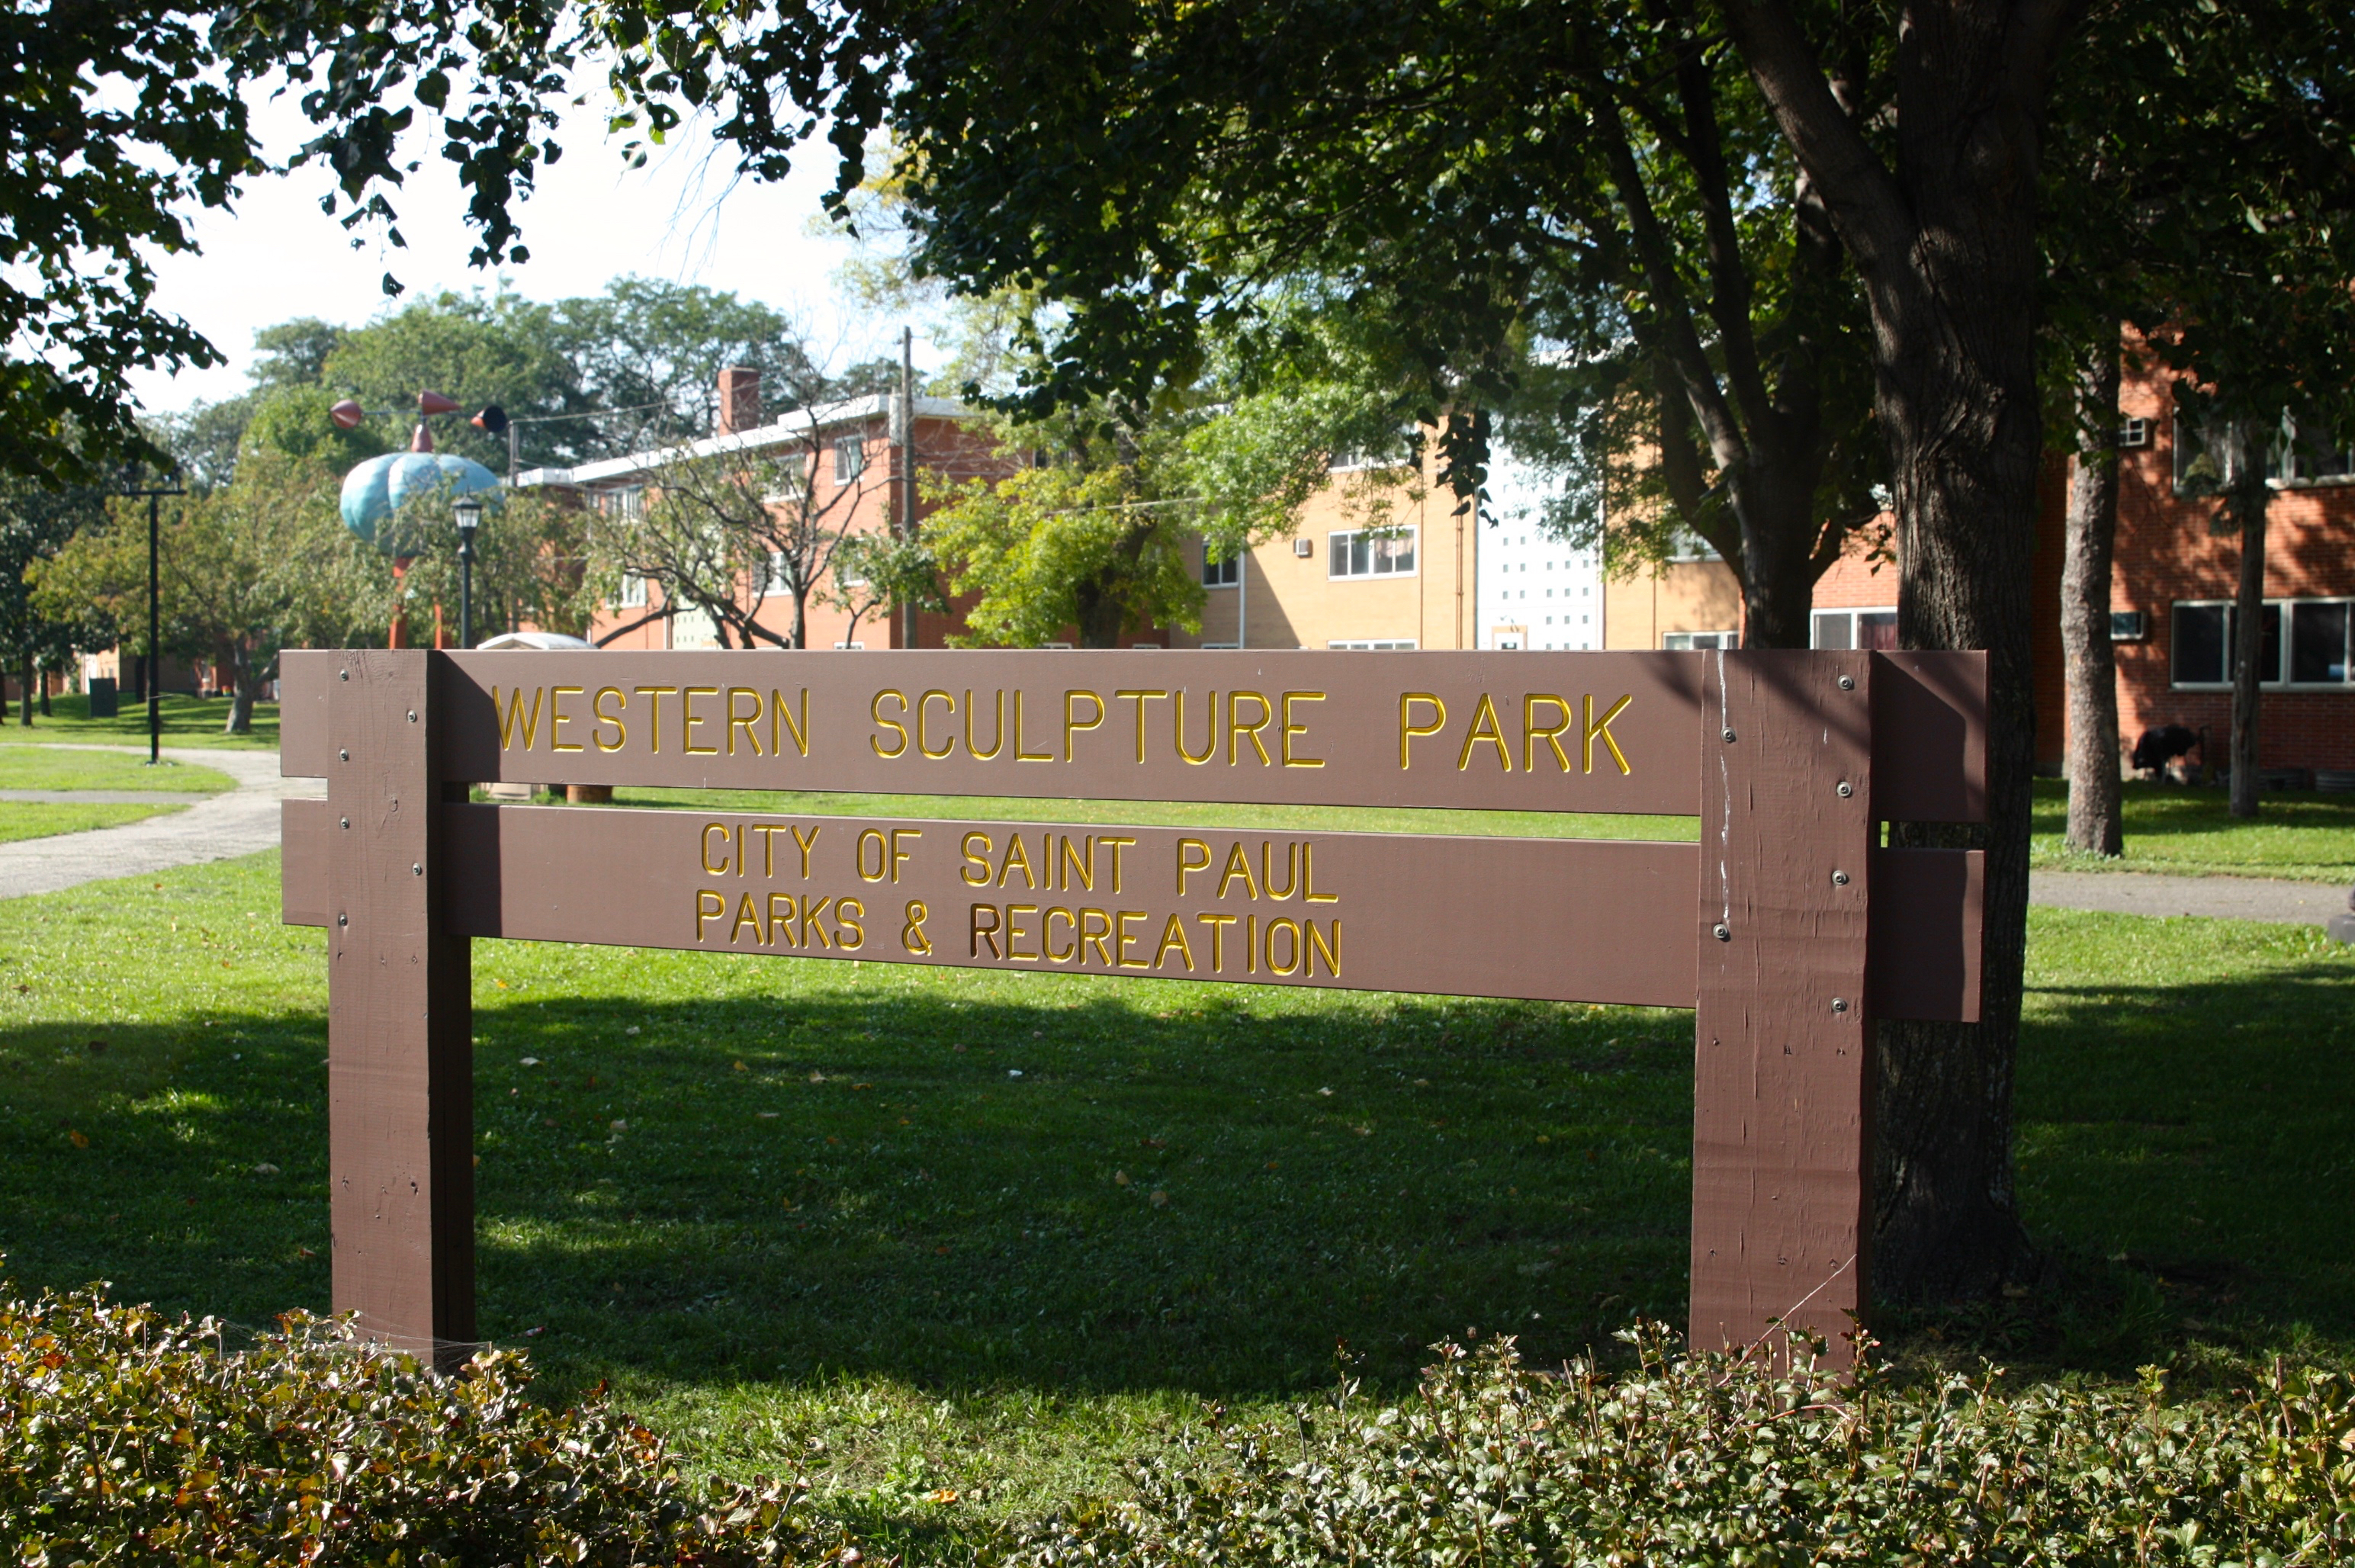 Visitors entering Western Sculpture Park from Marion Street are welcomed by this sign.